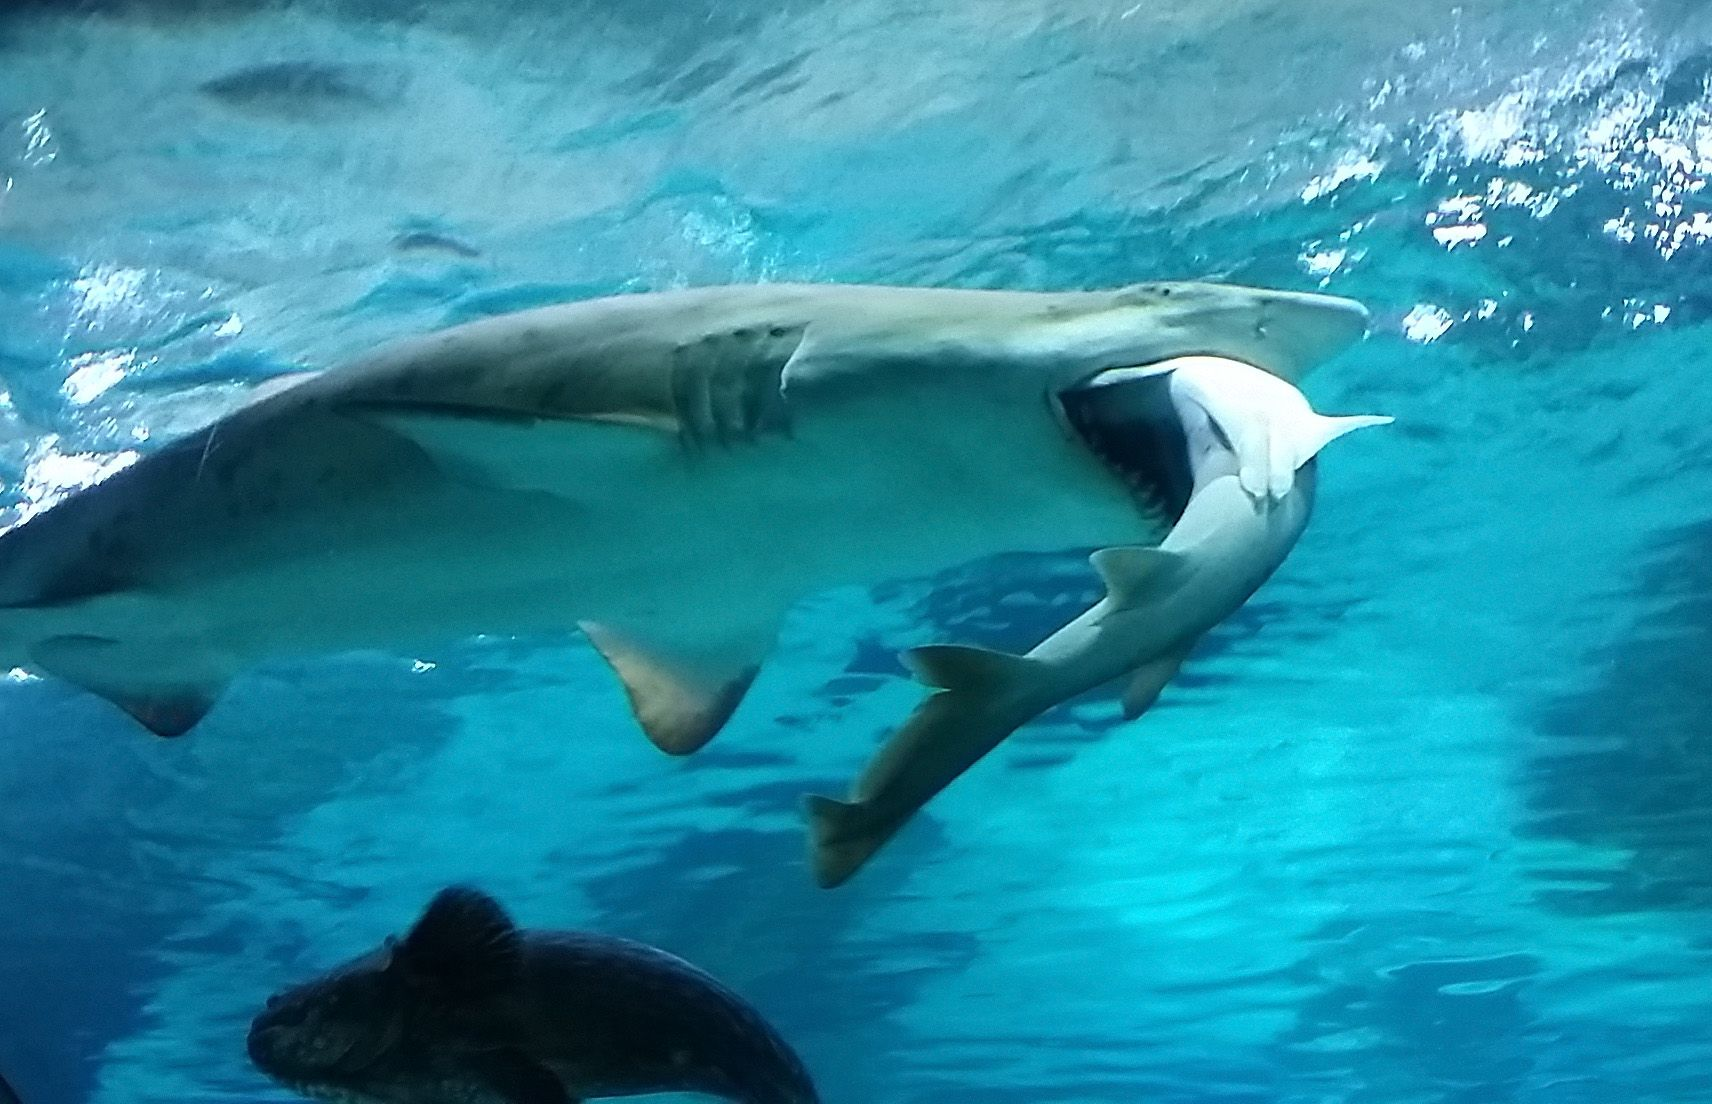 how to clean a shark to eat